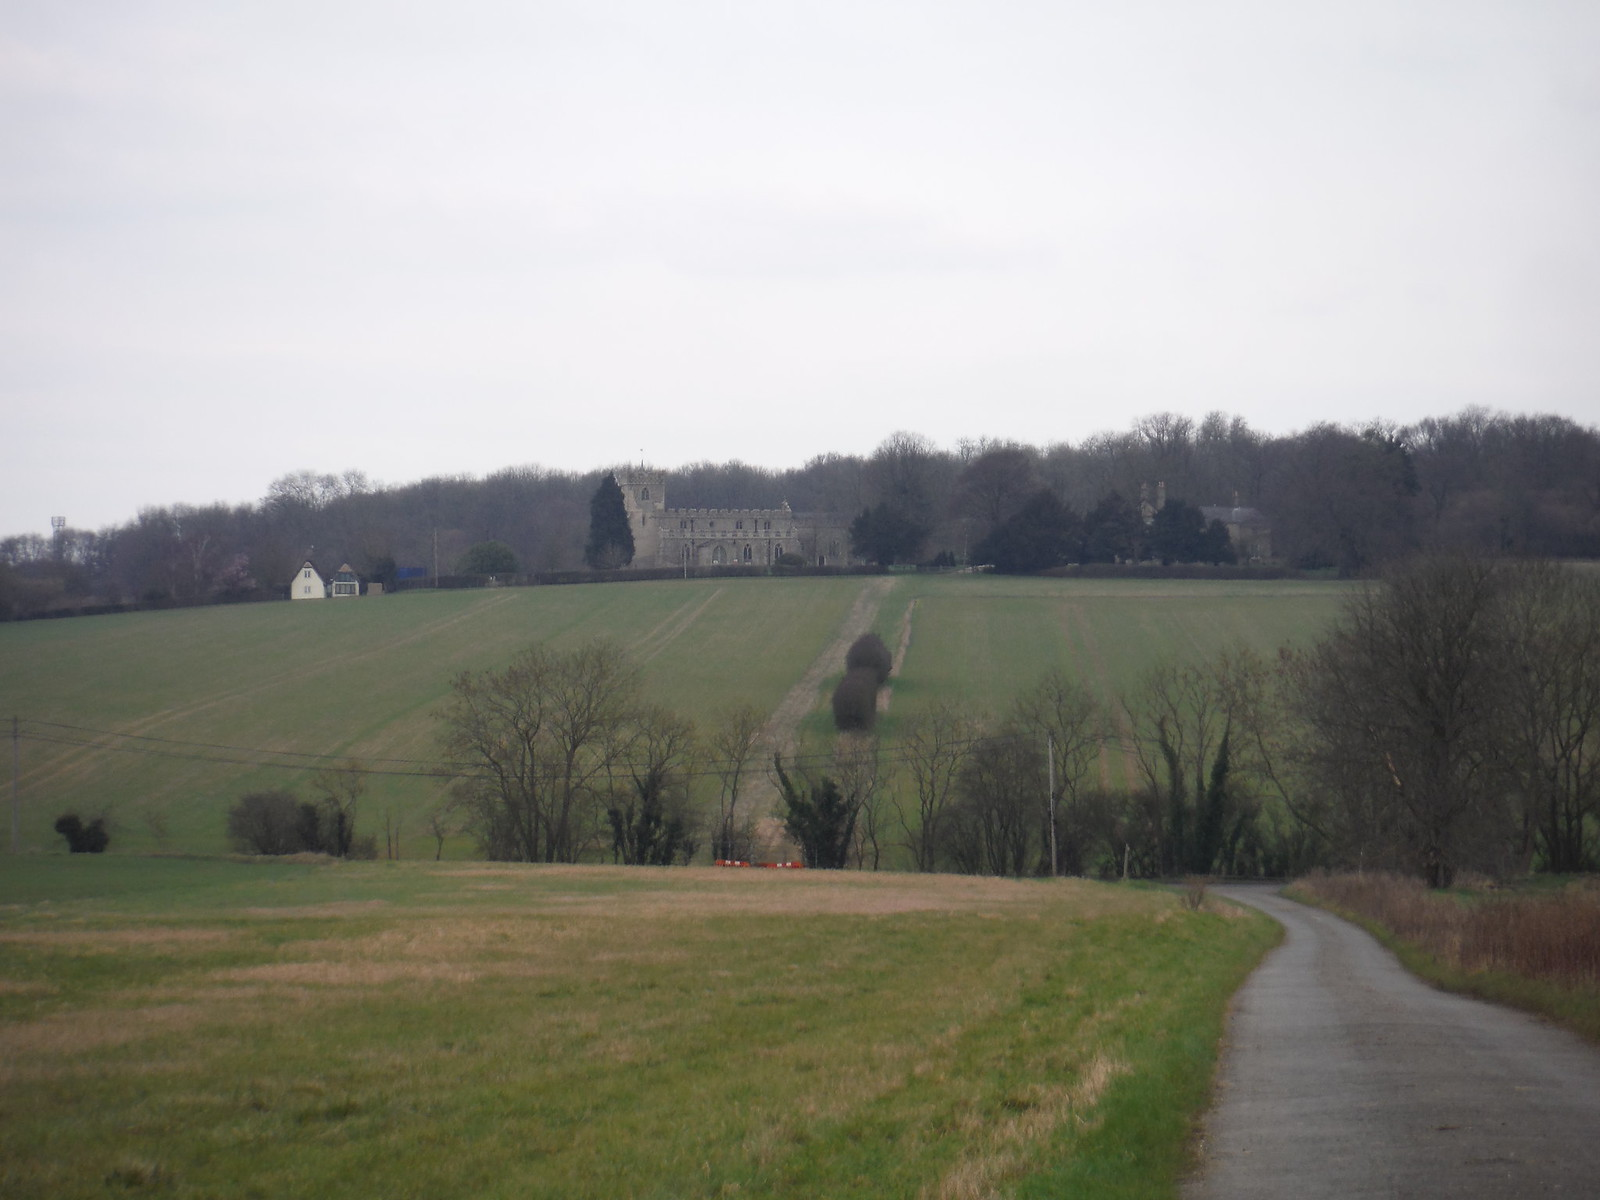 Church in Chrishall from near Chiswick Hall SWC Walk 116 Wendens Ambo [Audley End station] Circular (Extension)